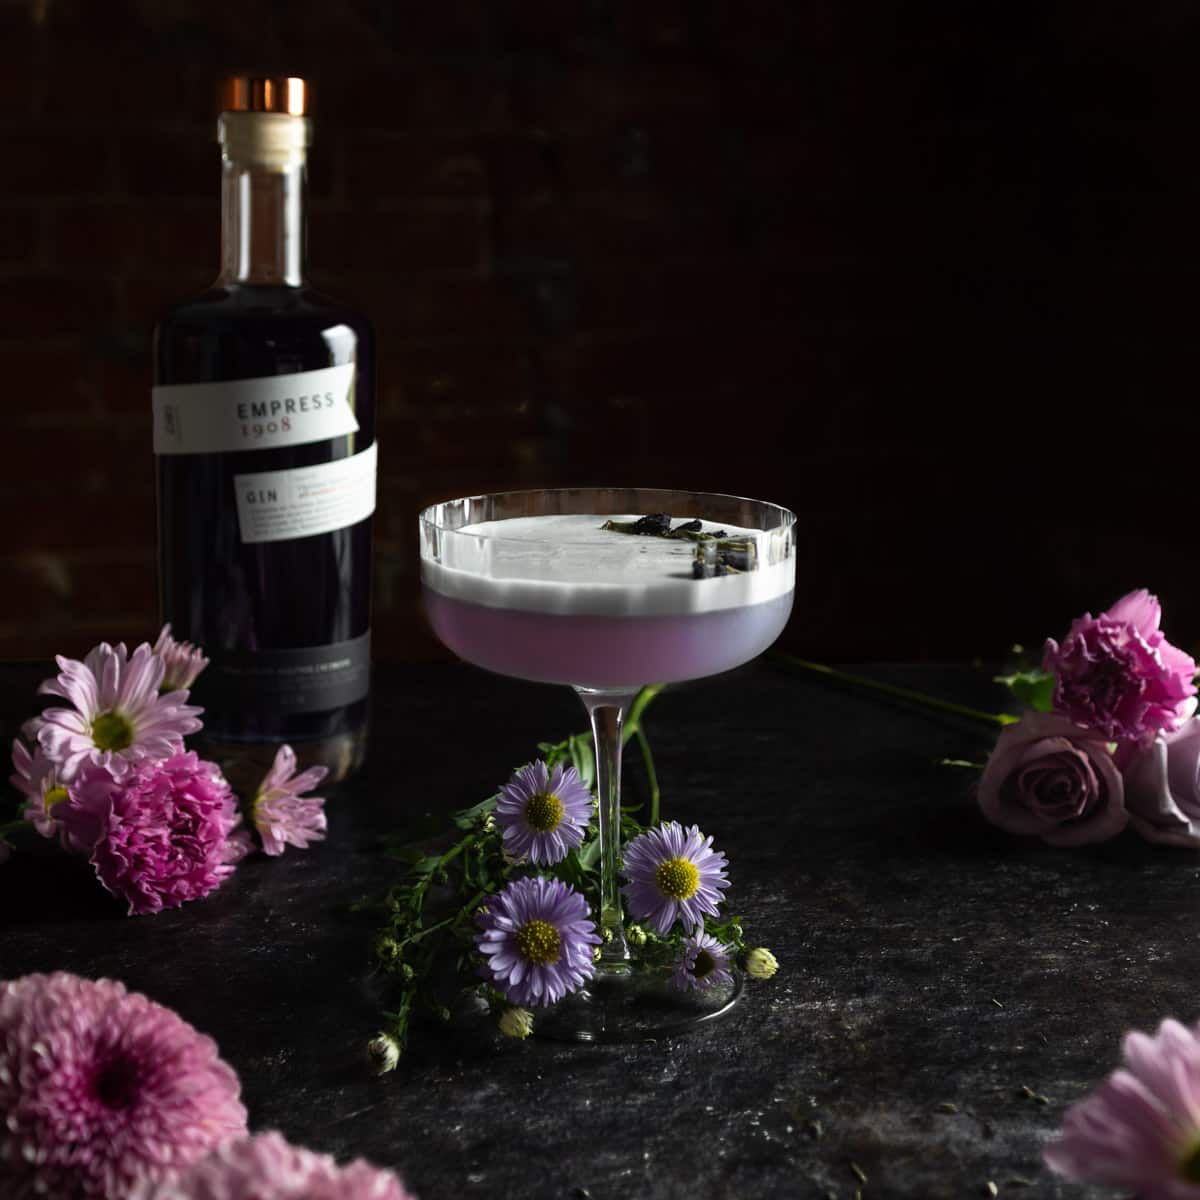 A lavender gin sour next to a bottle of Empress 1908 gin surrounded by purple flowers